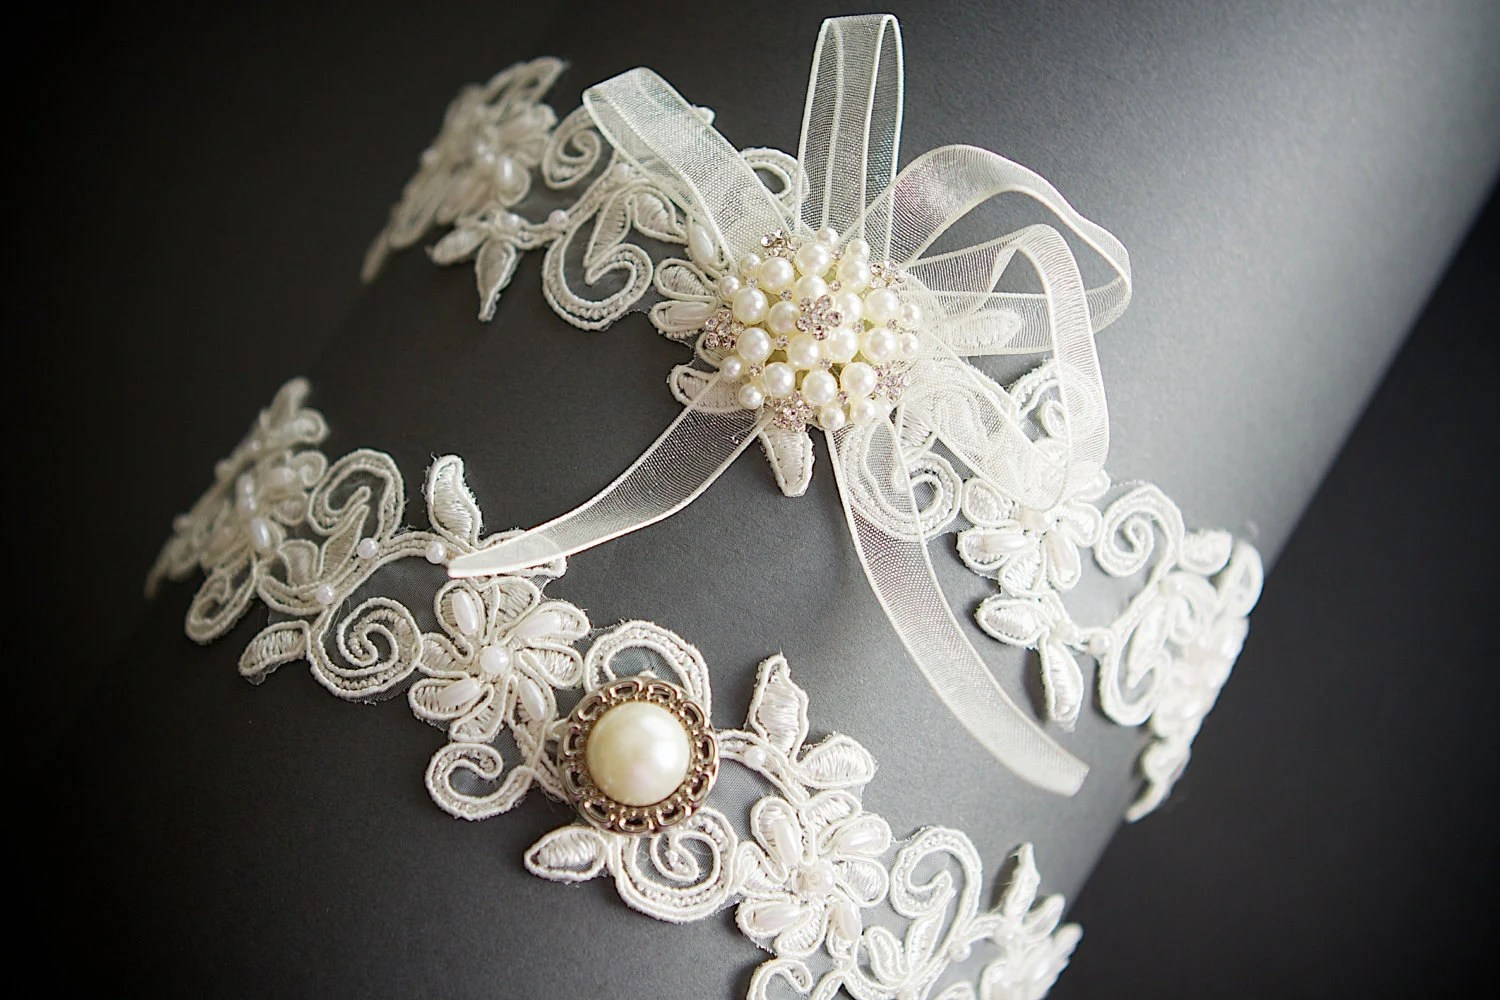 69201e9ef50 Ivory Floral Beaded Lace Bridal Garter Set Wedding Garter Set Toss Garter  Bridal Accessories Pearl Accent